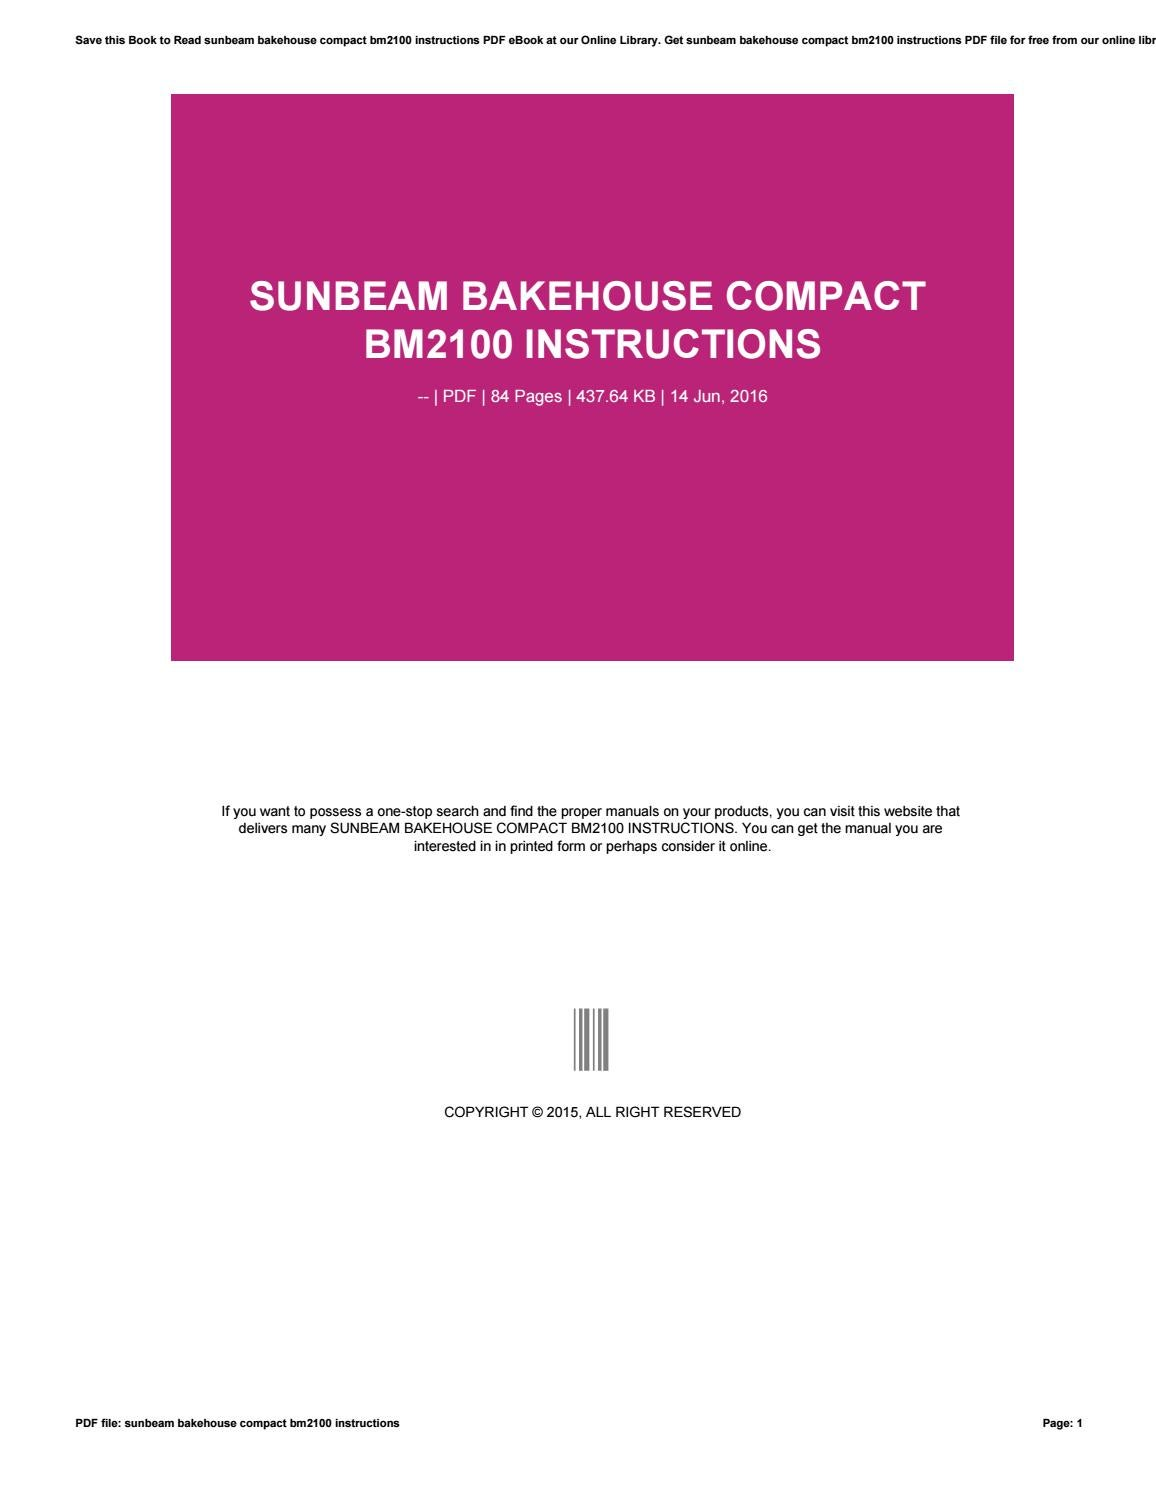 sunbeam bakehouse compact instructions